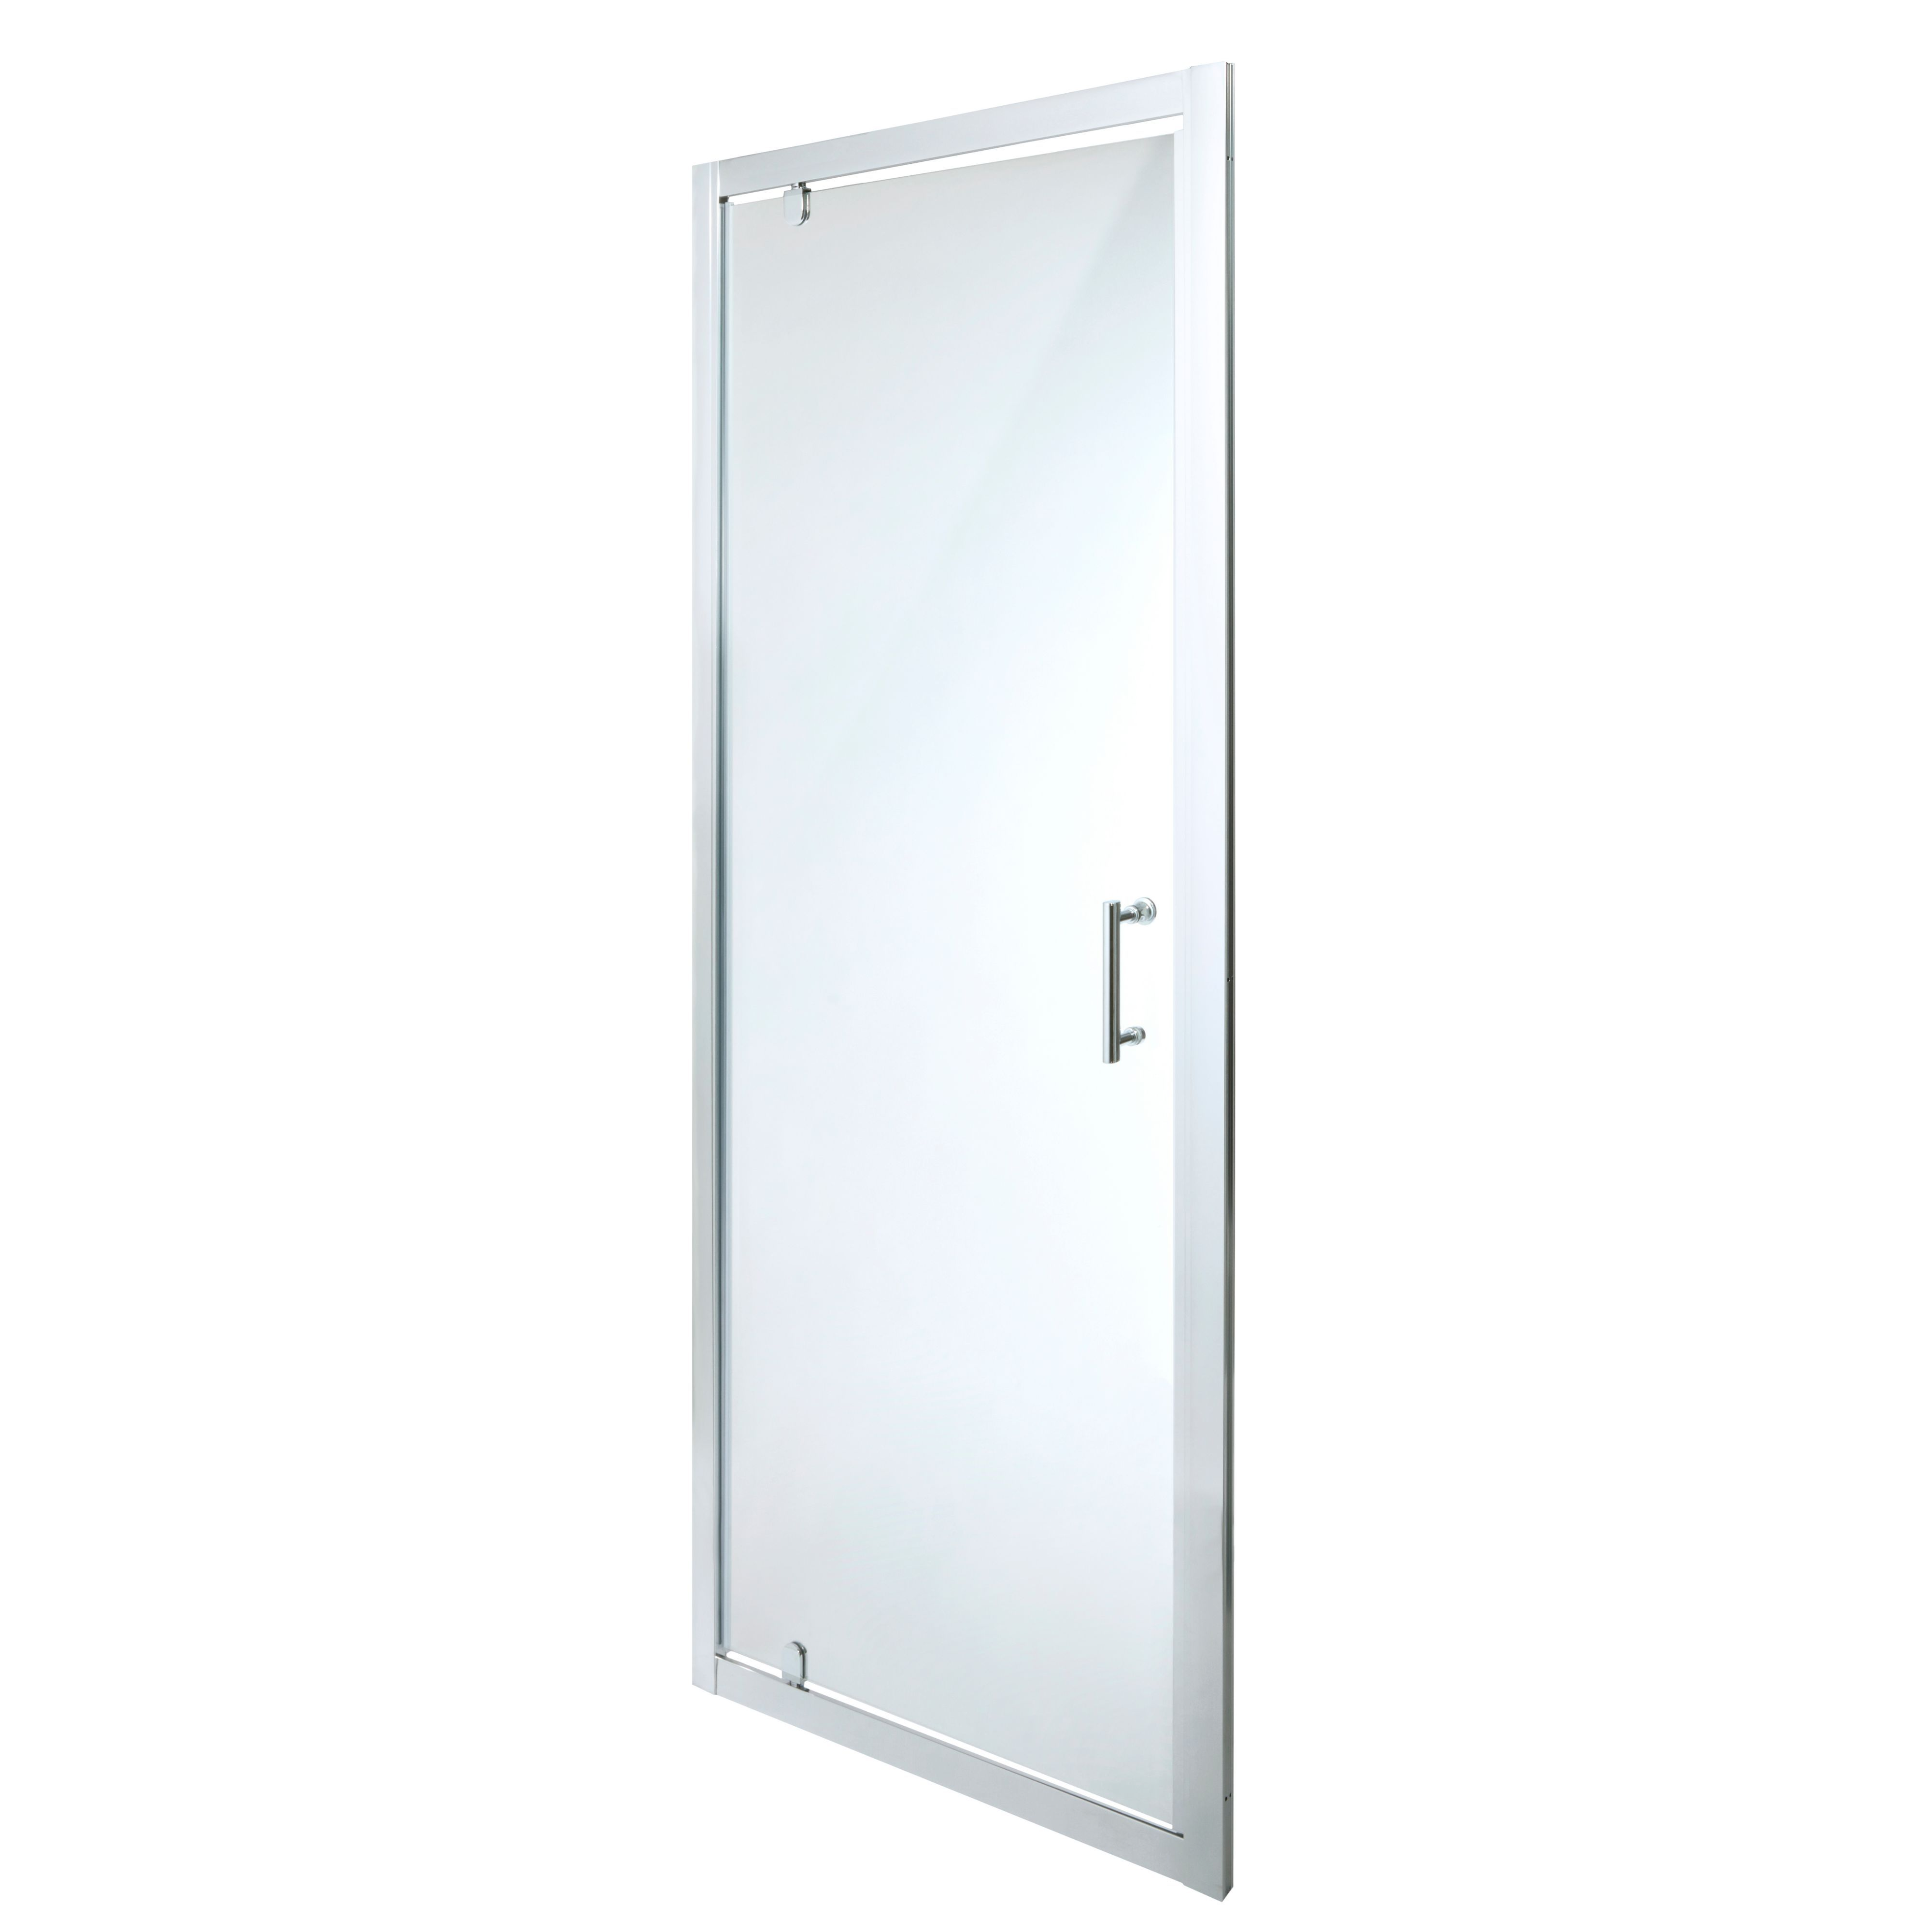 Cooke & Lewis Onega Shower Door With Pivot Door (W)800Mm